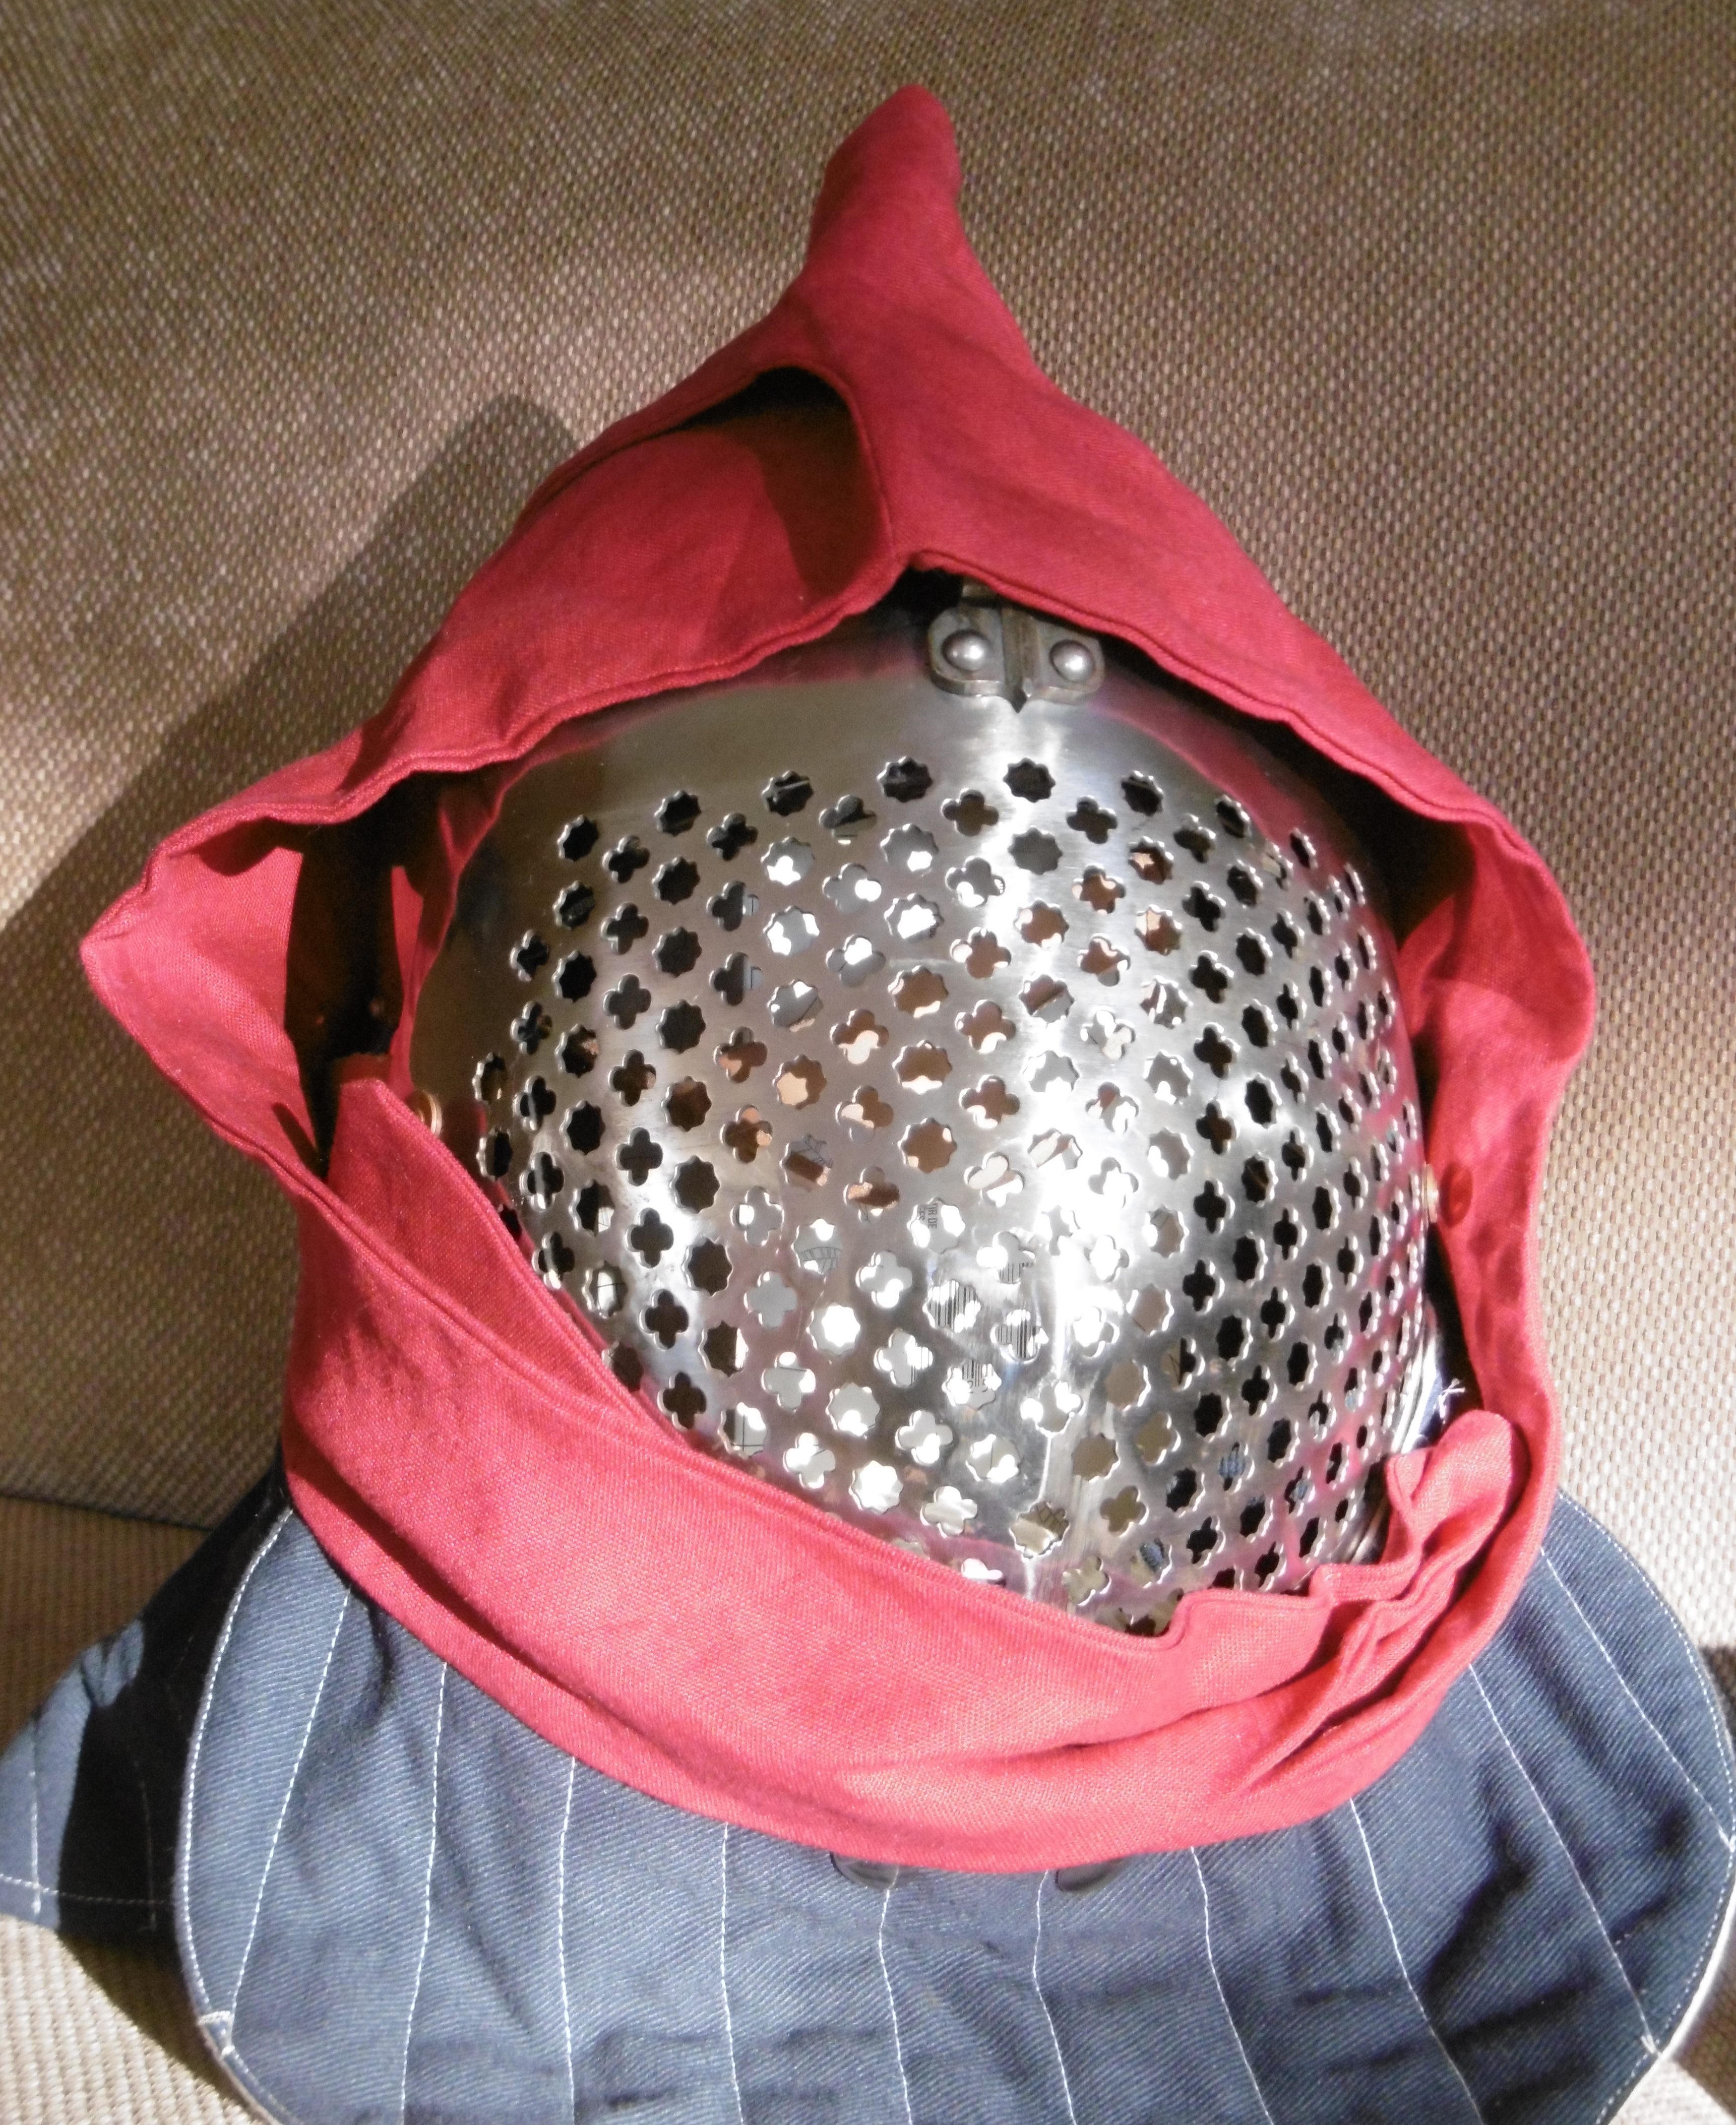 A bascinet with a perforated-metal visor wearing a red hood with cheek flaps and a tall comb at the top folded down